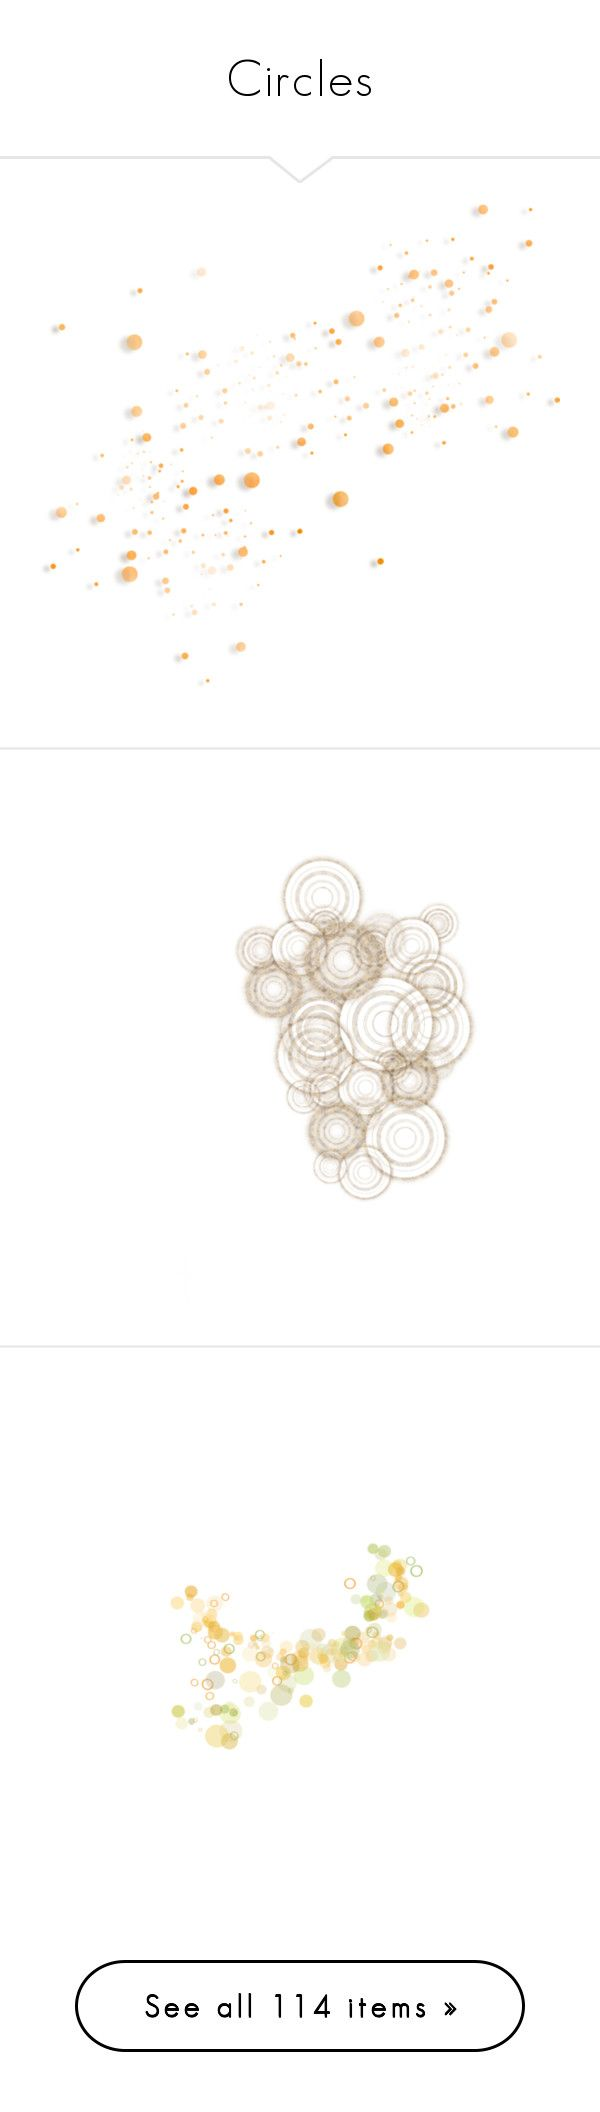 """""""Circles"""" by mlkdmr ❤ liked on Polyvore featuring circle, circular, round, effects, steampunk, backgrounds, fillers, embellishments, texture and circles"""